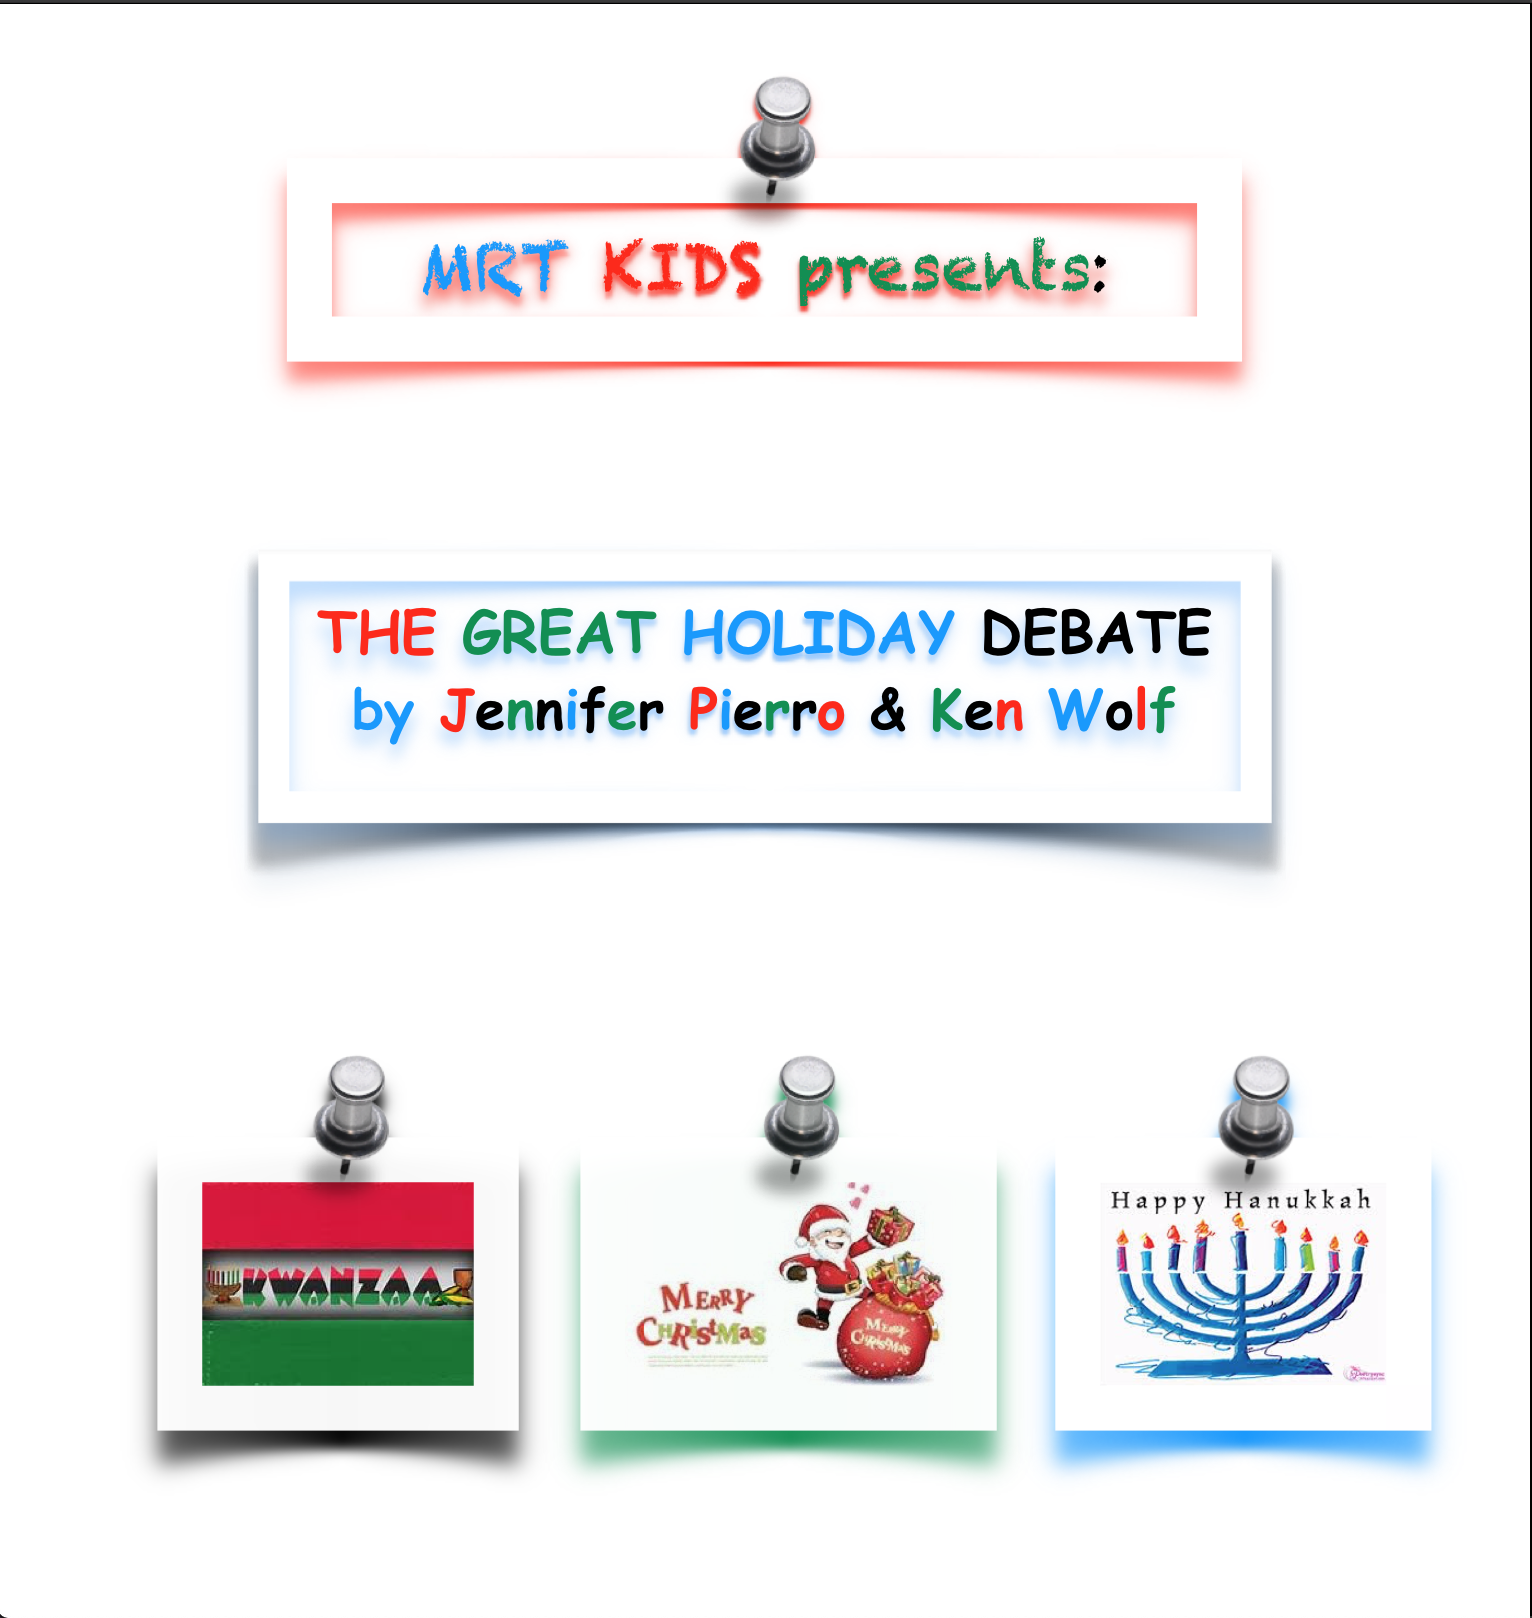 THE GREAT HOLIDAY DEBATE PROGRAM SCREEN SHOT PAGE 1.png